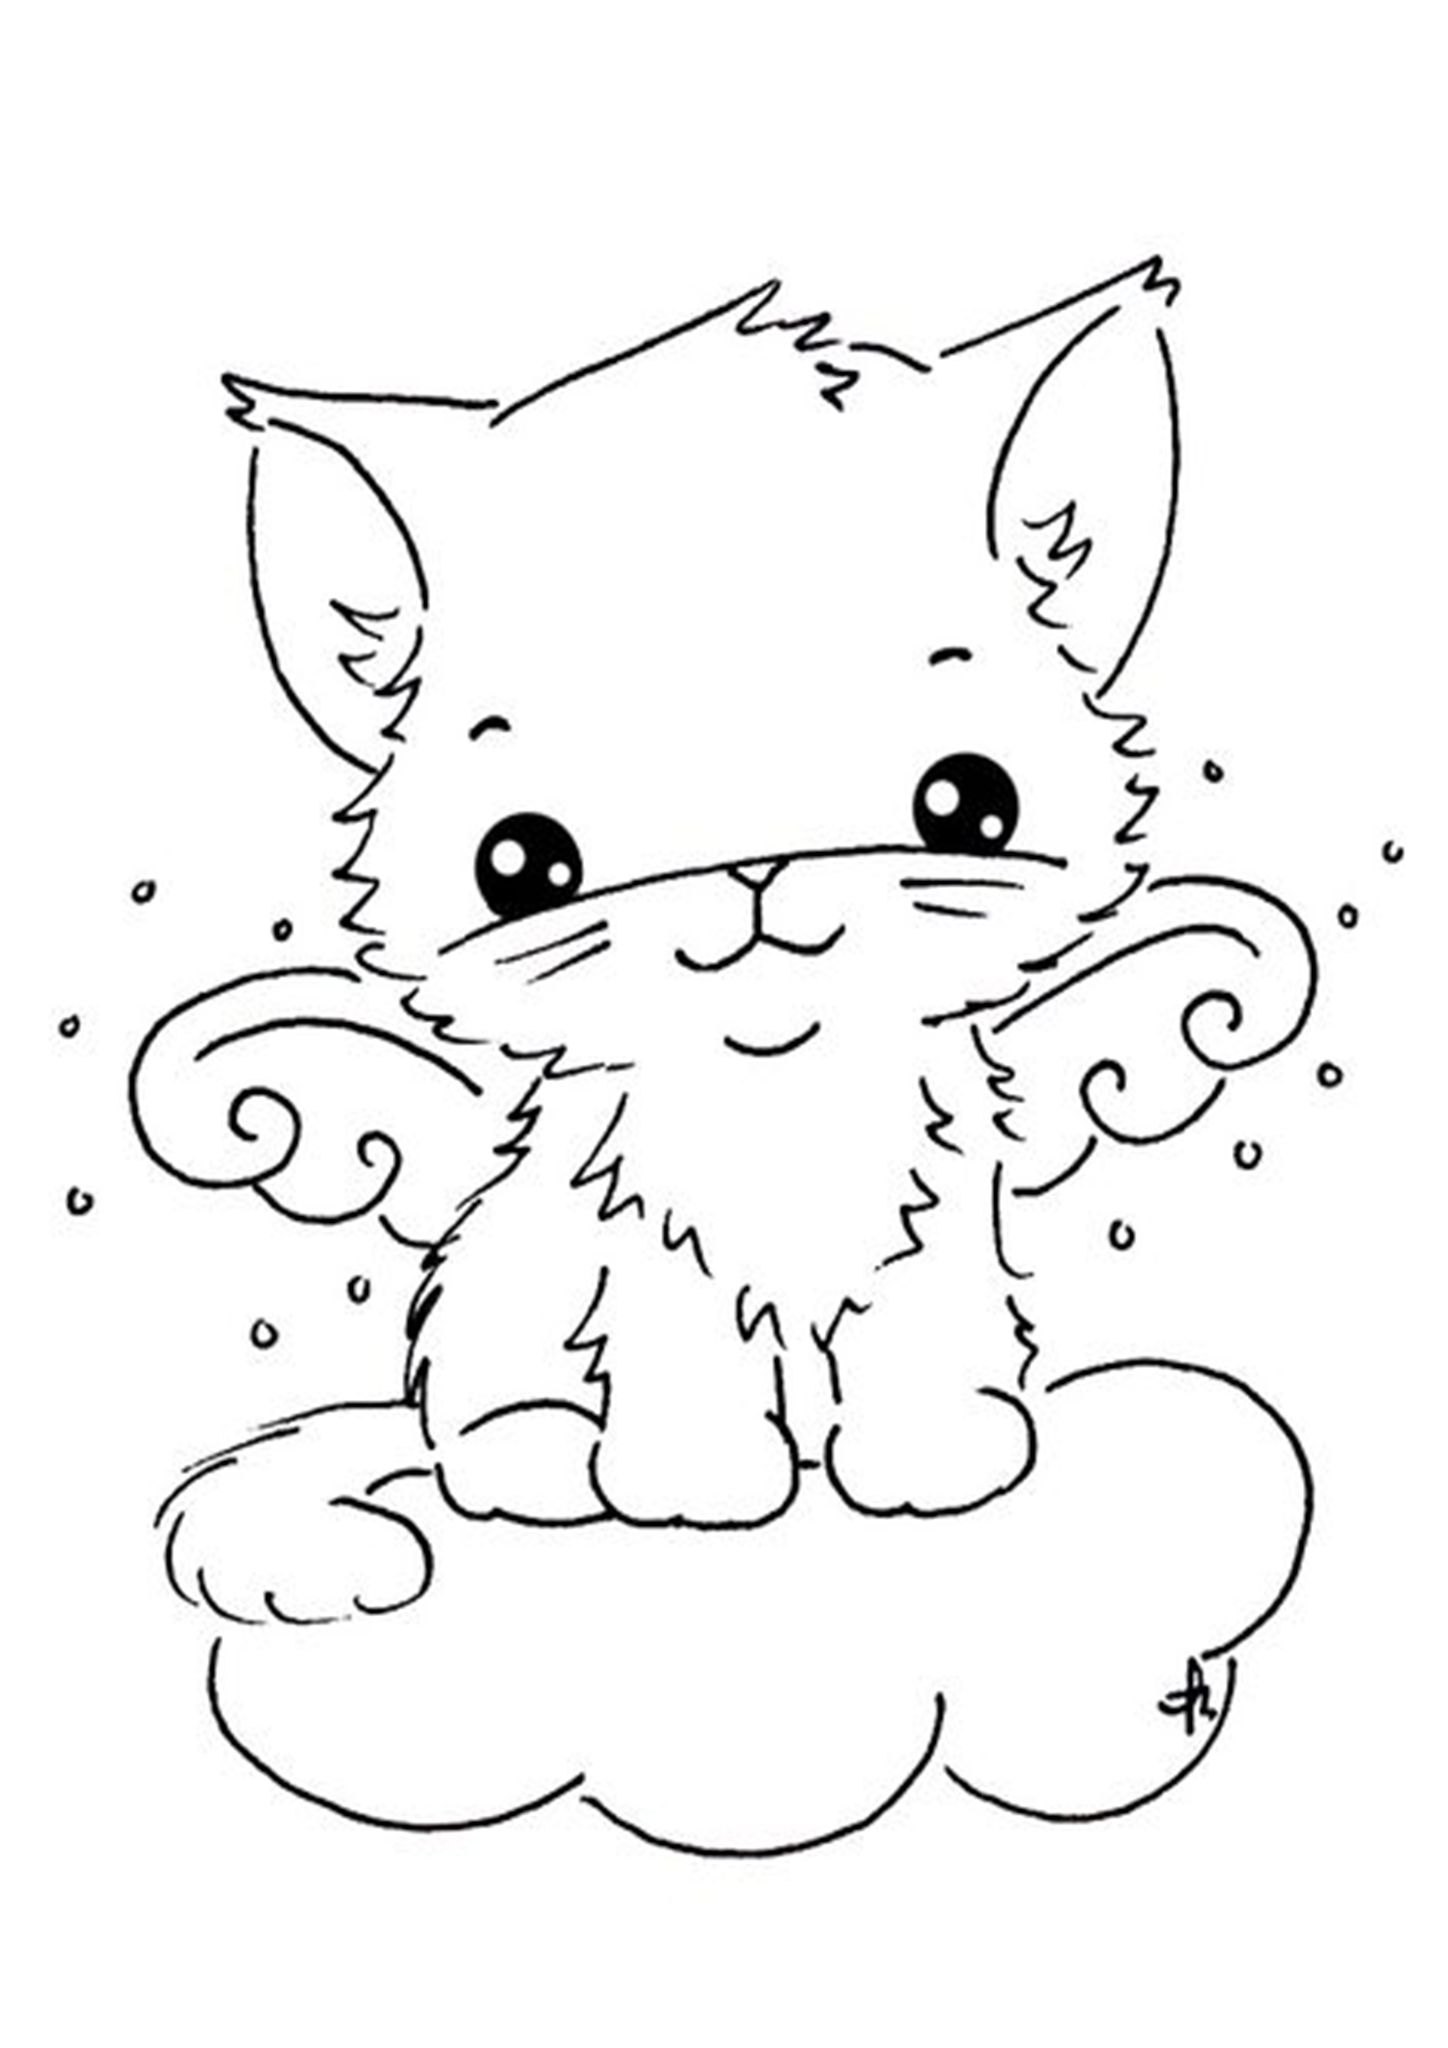 Free Easy To Print Kitten Coloring Pages In 2020 Digi Stamps Cat Coloring Page Coloring Books